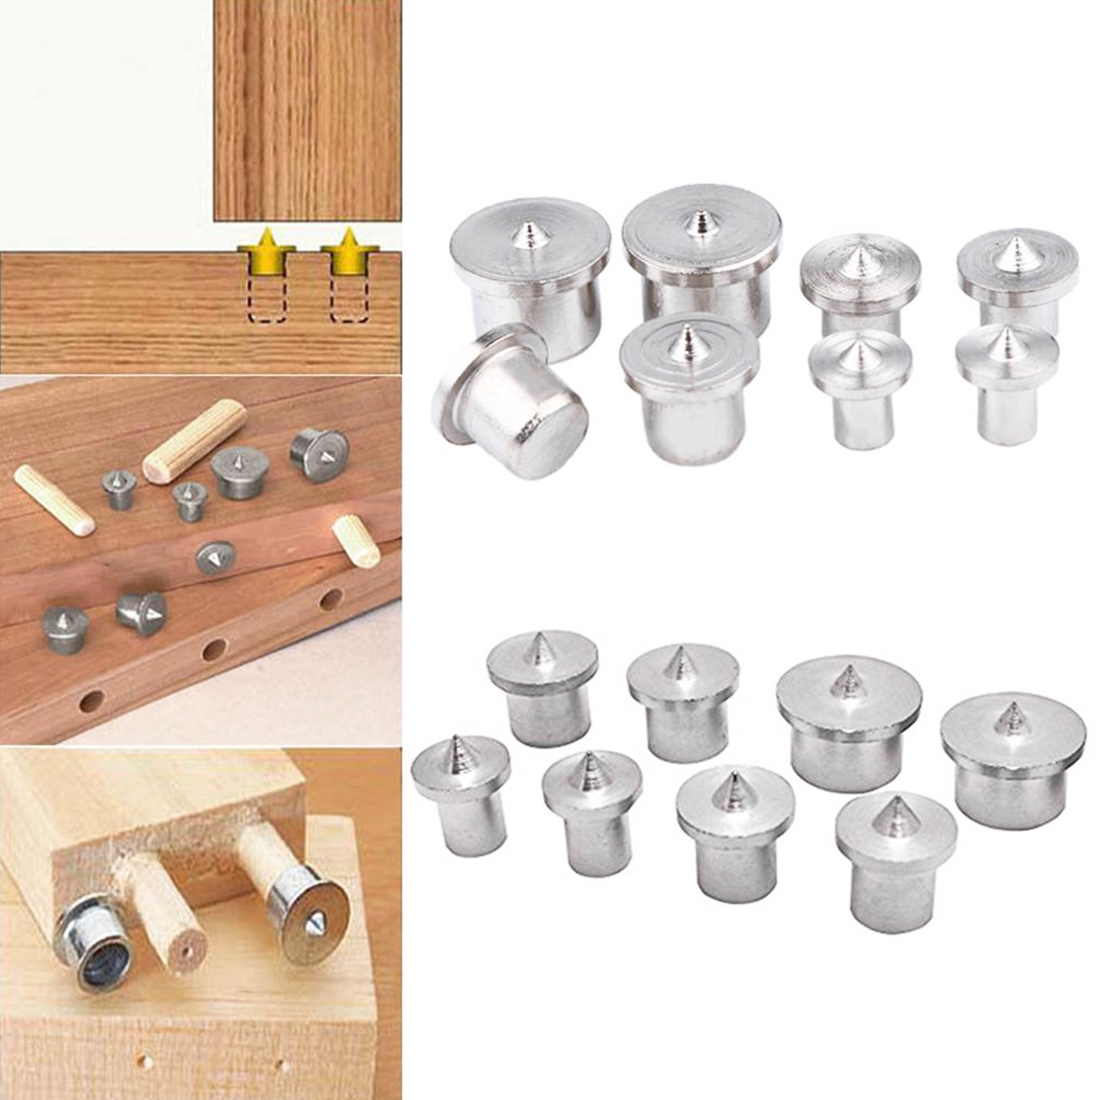 8pcs/set Dowel Tenon Center Set Woodworking Top Locator Roundwood Punch Wooden Furniture Centering Point